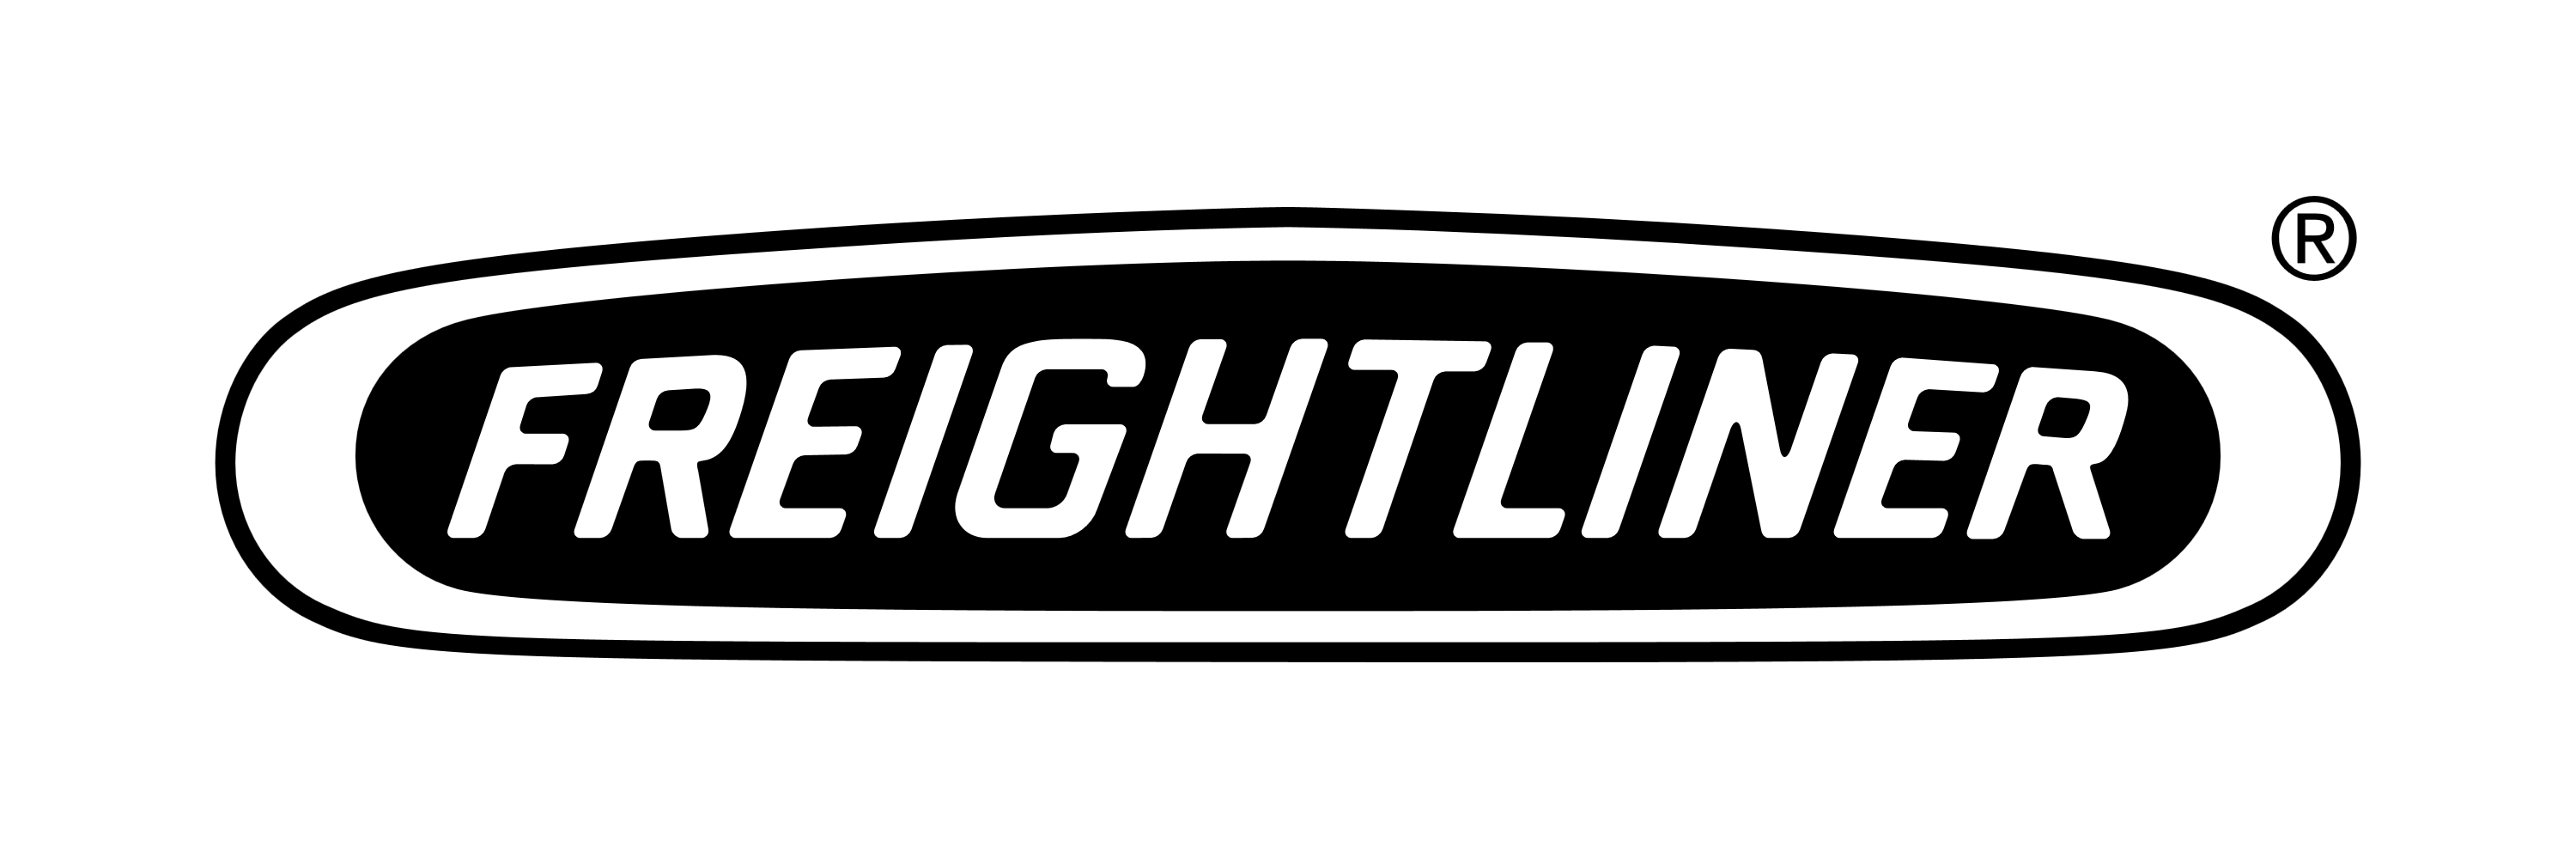 Internationallogoflap besides Freightliner Logo Black X together with A C A B likewise Transformers Cl in addition . on peterbilt logo